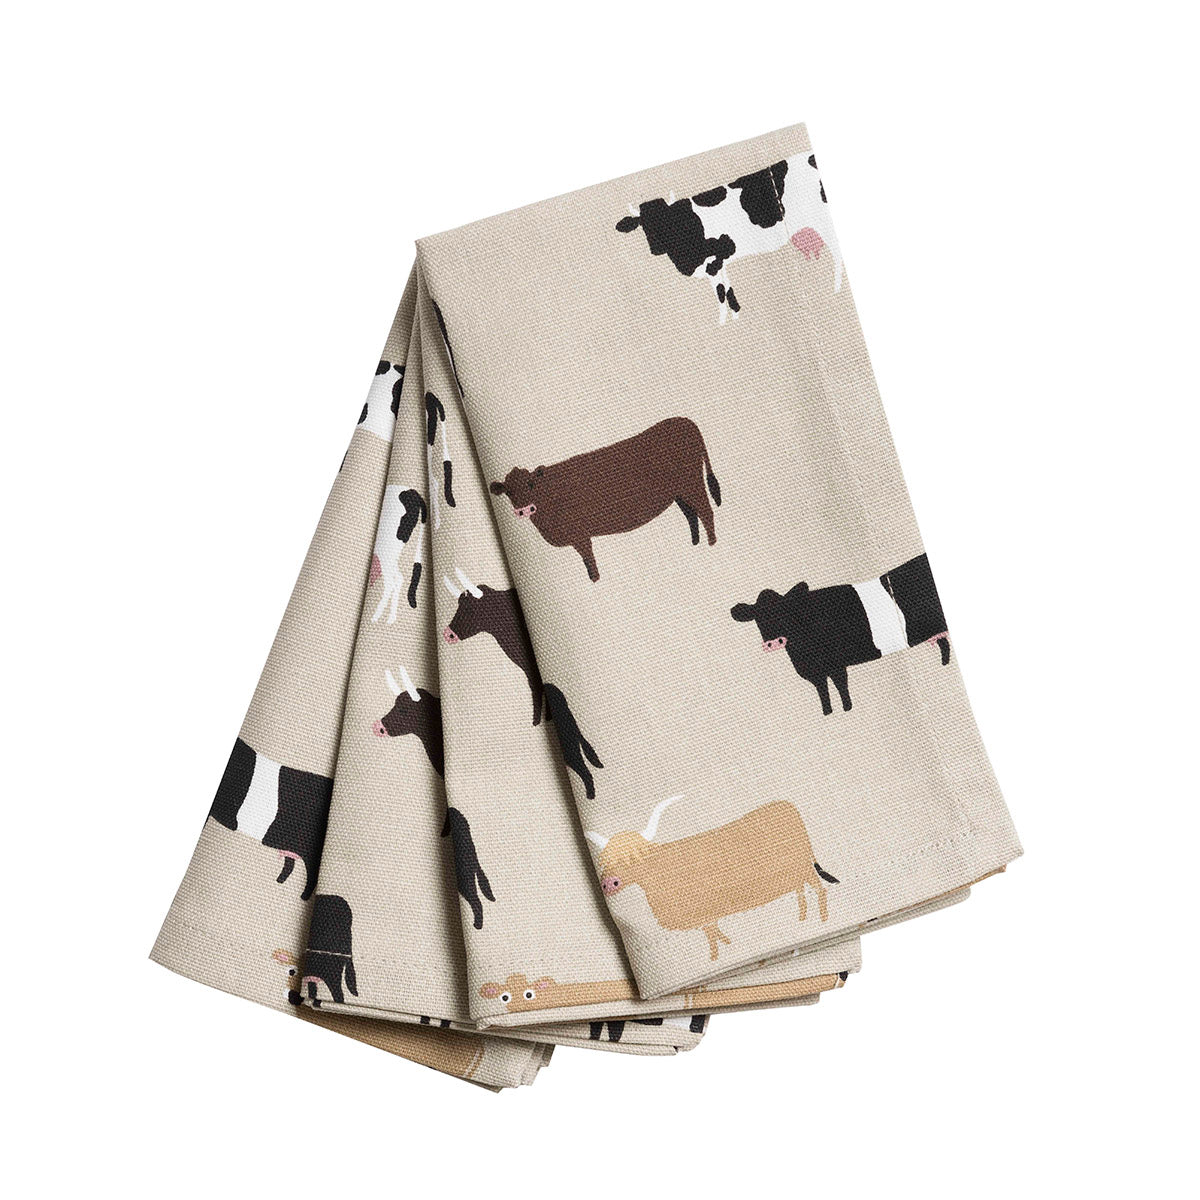 Cows Napkins - Set of 4